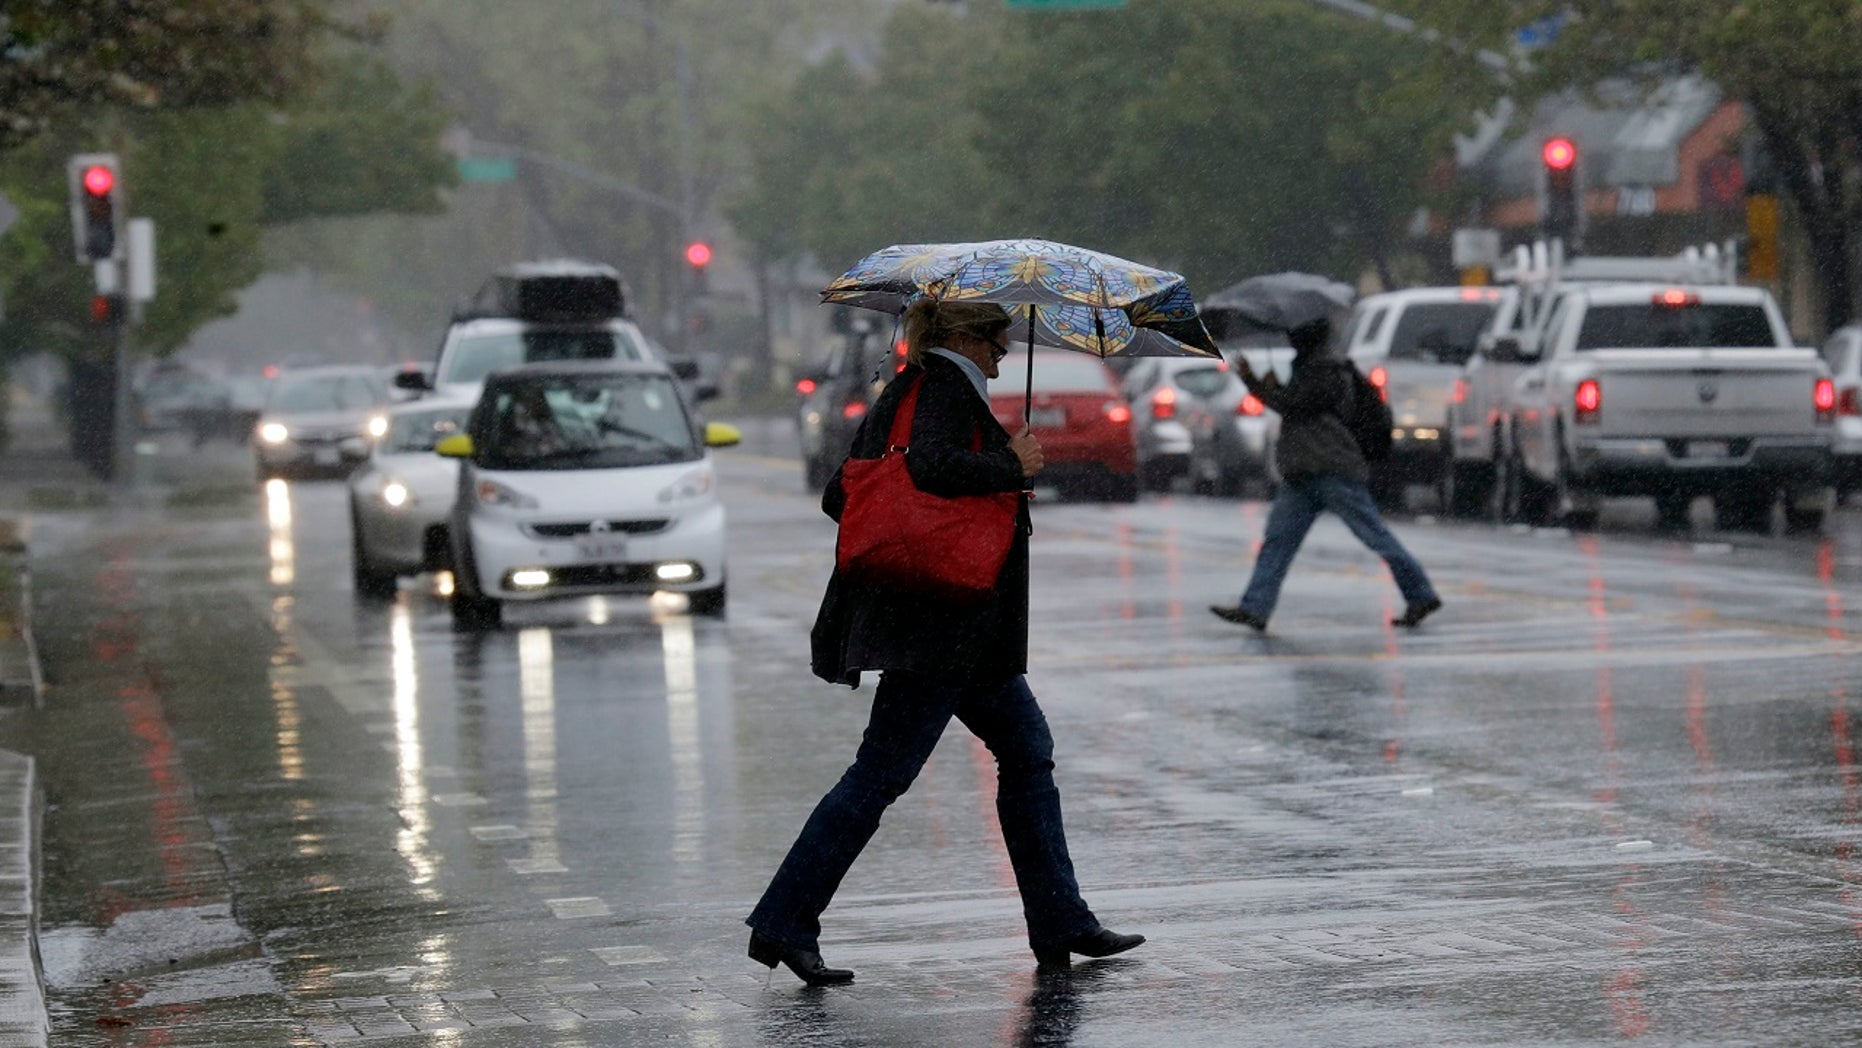 Pedestrians shield themselves from the rain with umbrellas Friday, April 6, 2018, in Santa Rosa, Calif.